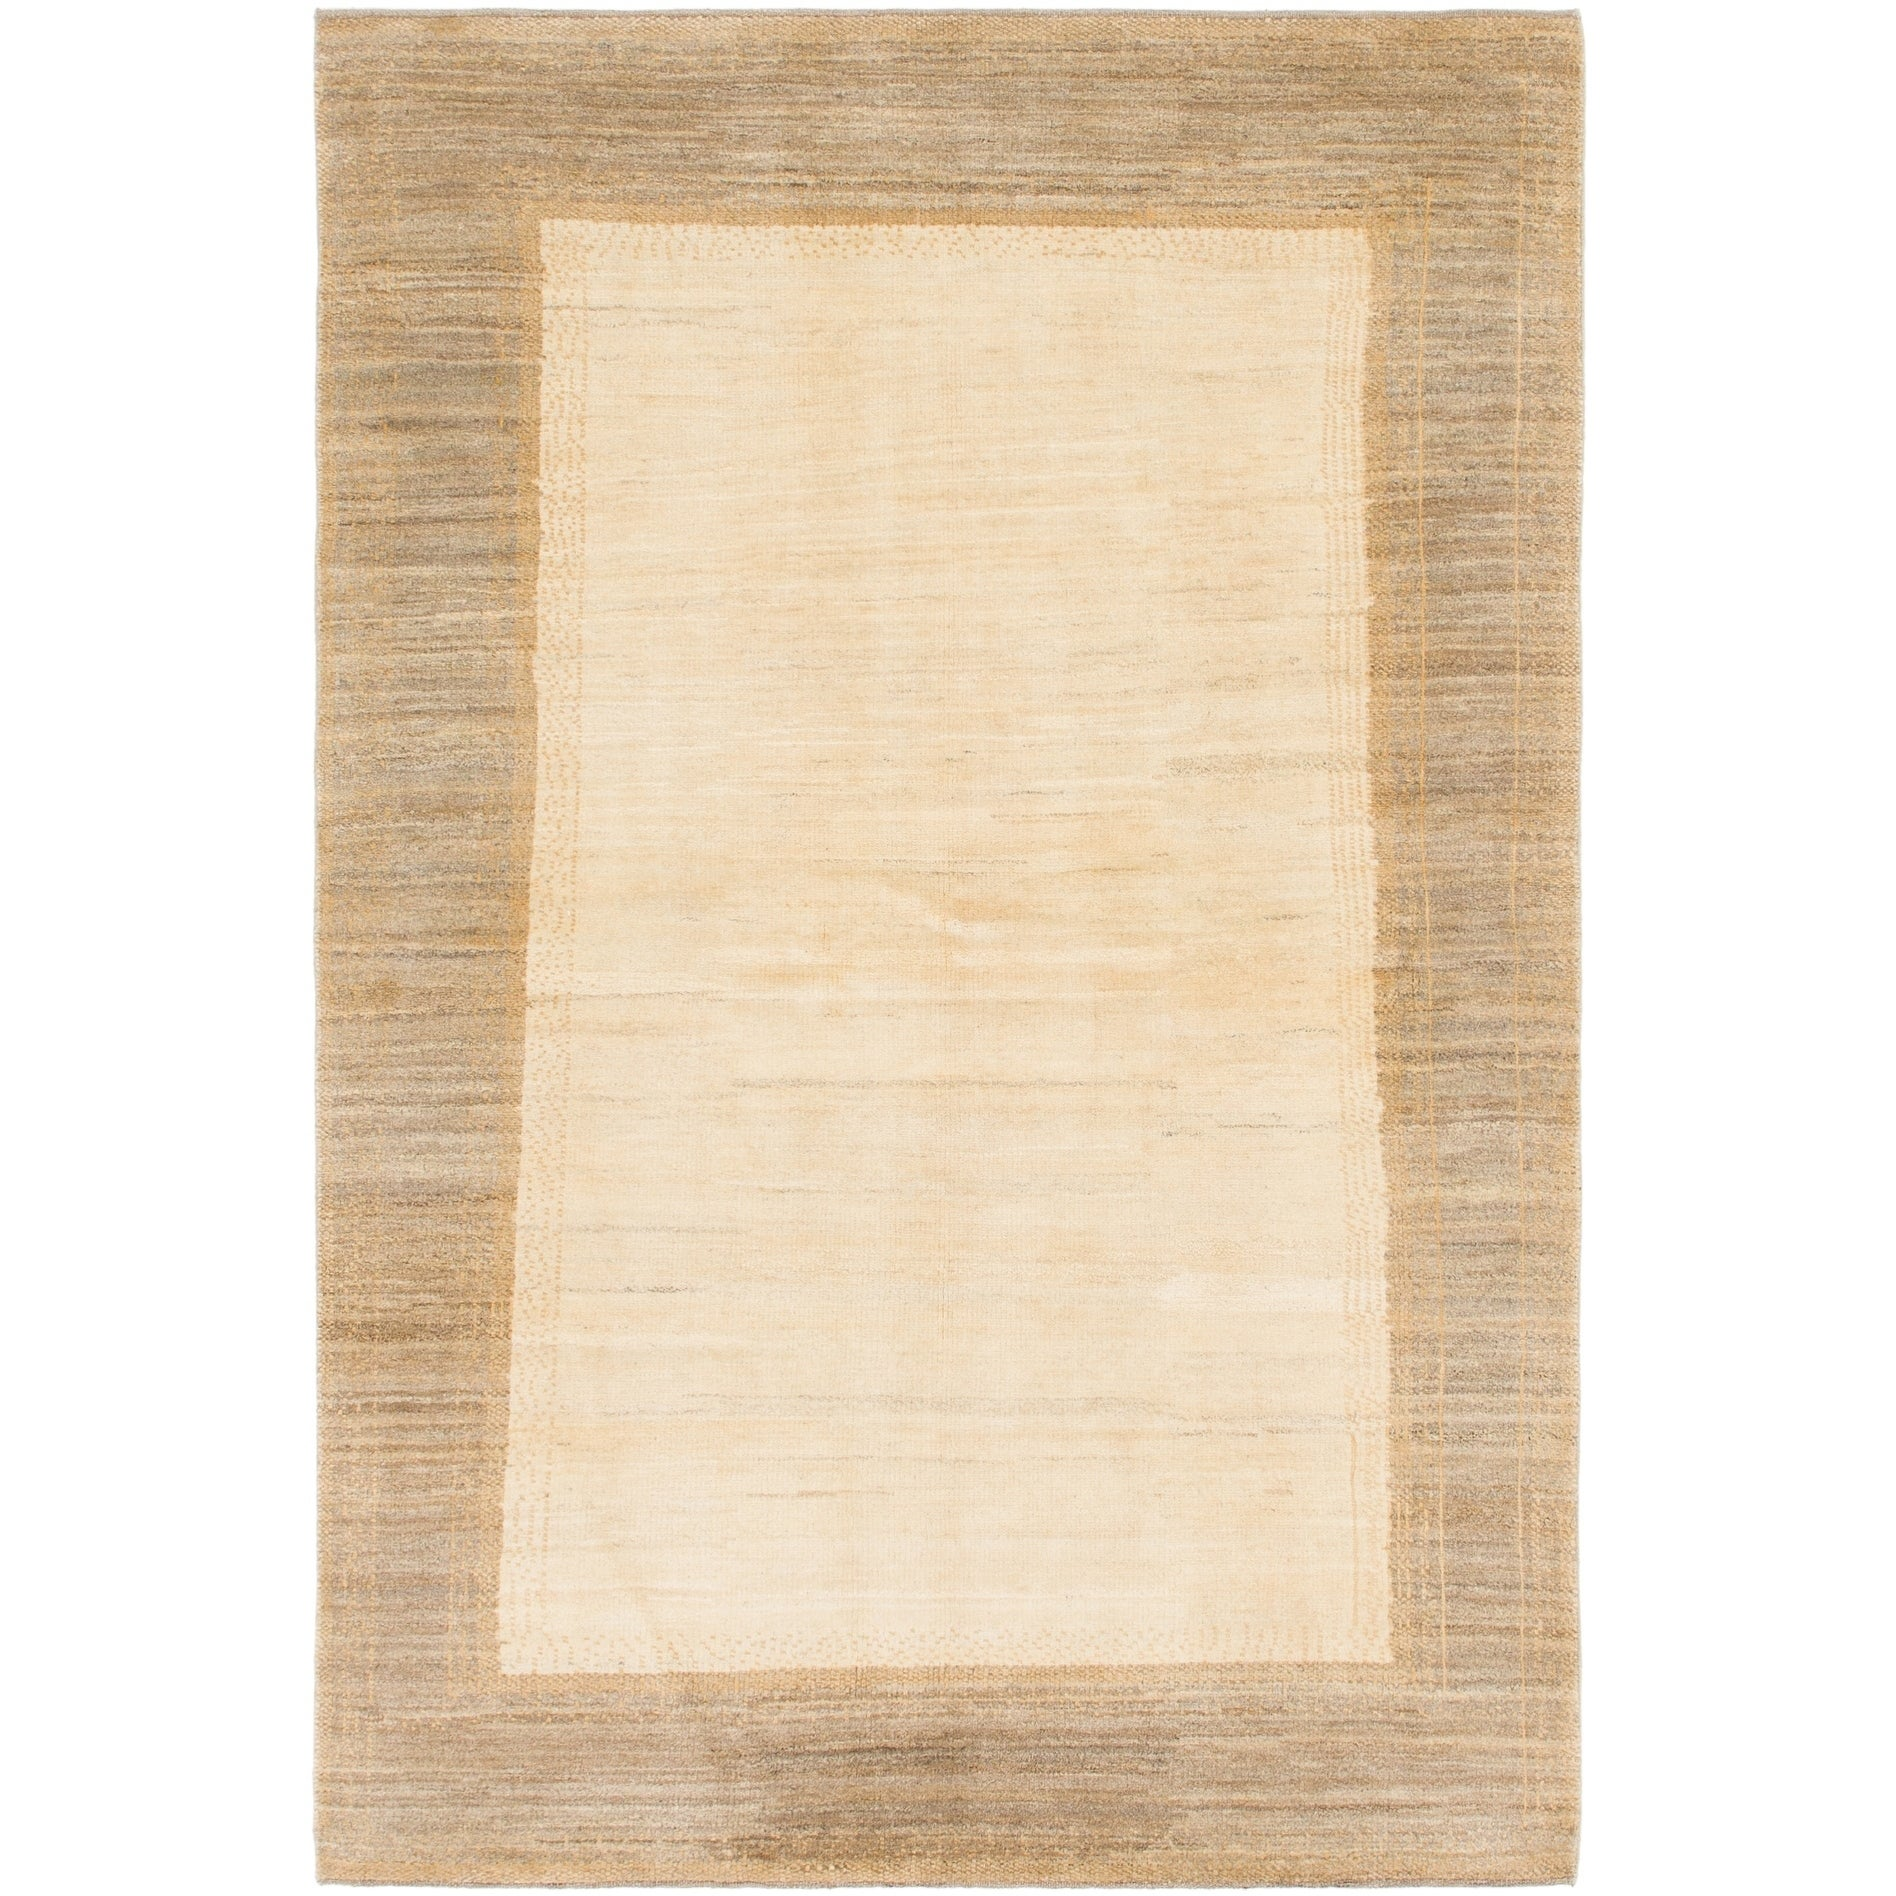 Hand Knotted Kashkuli Gabbeh Wool Area Rug - 5 6 x 8 2 (Cream - 5 6 x 8 2)